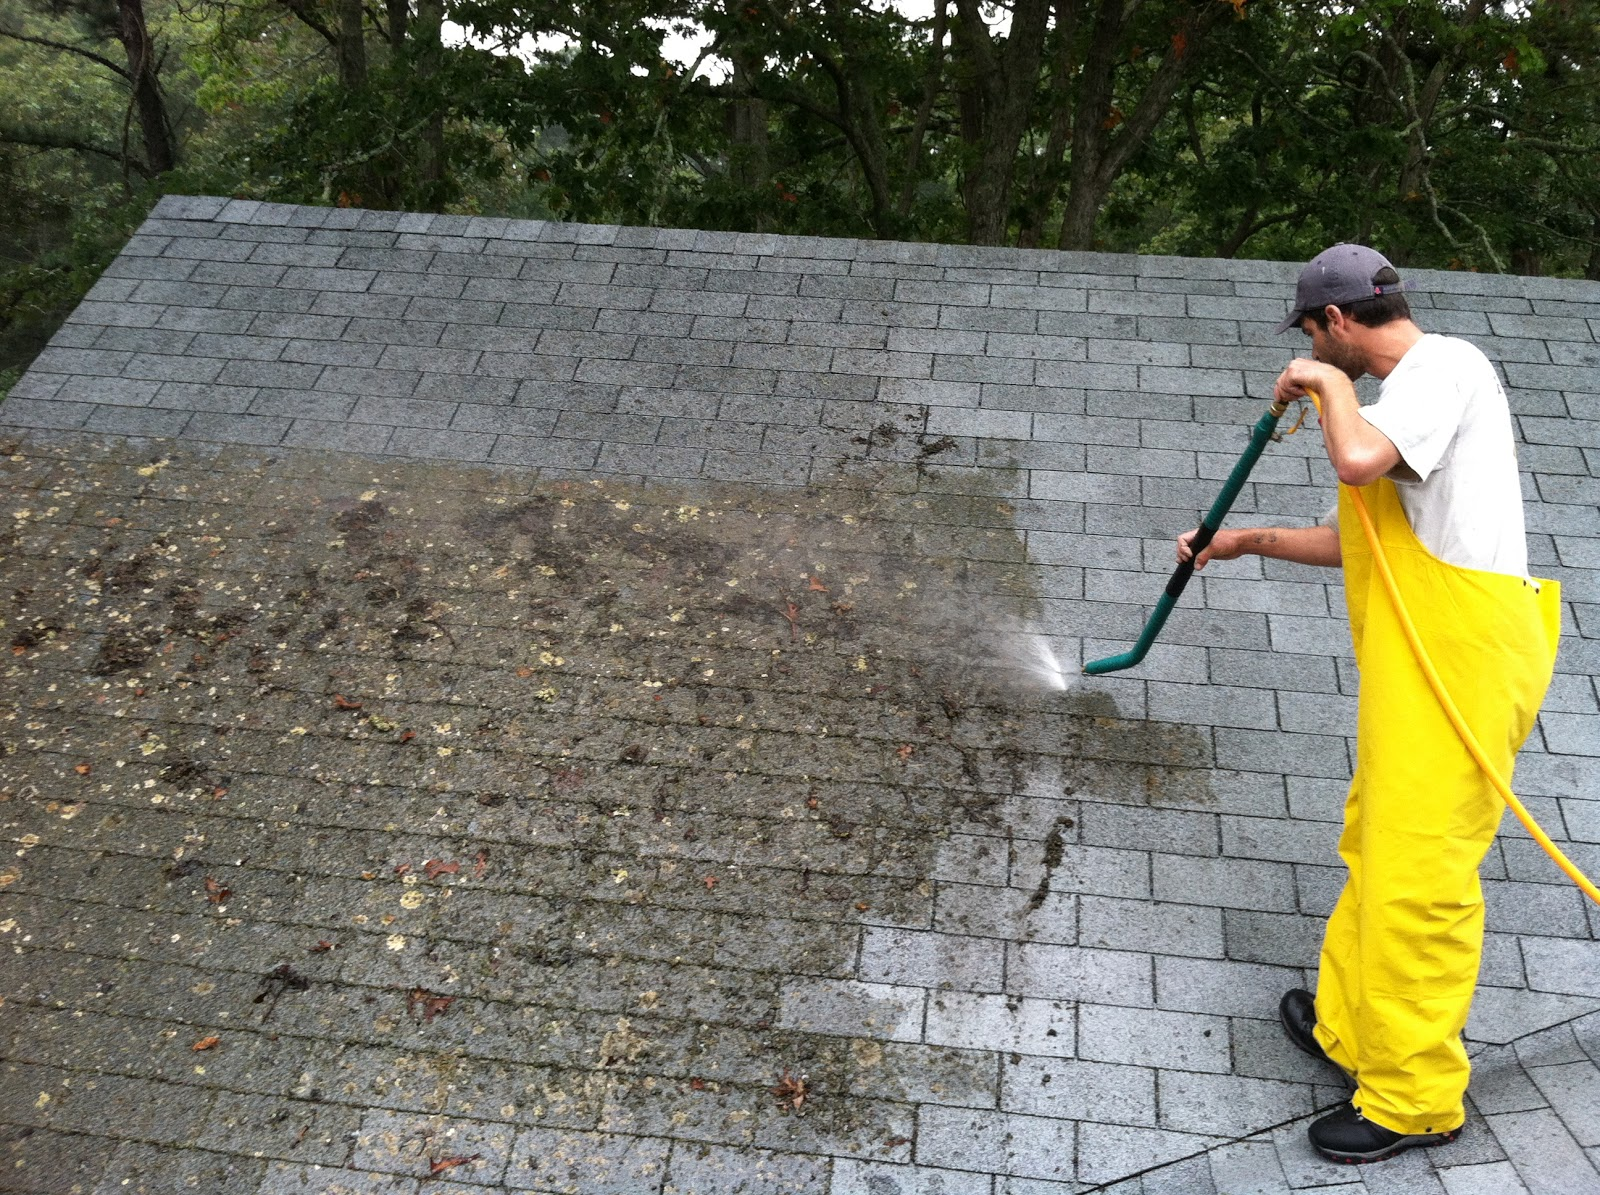 Roof cleaning - Using water pressure roof cleaning ...